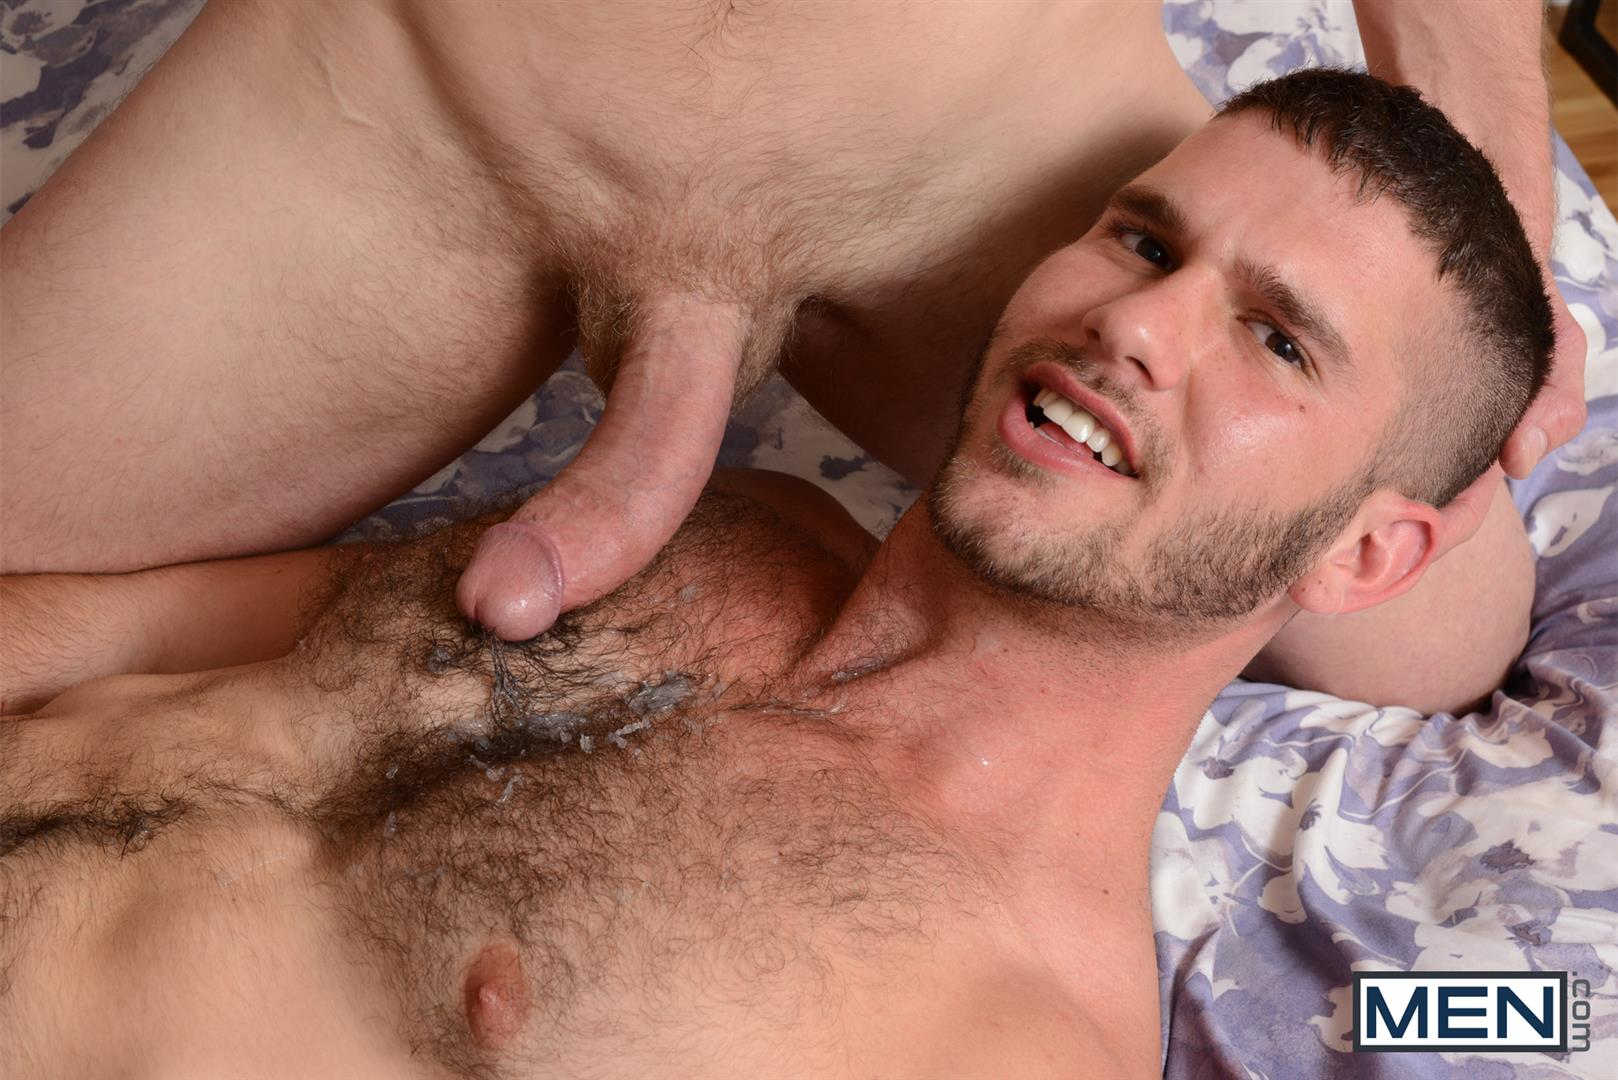 Hairy gay men having sex